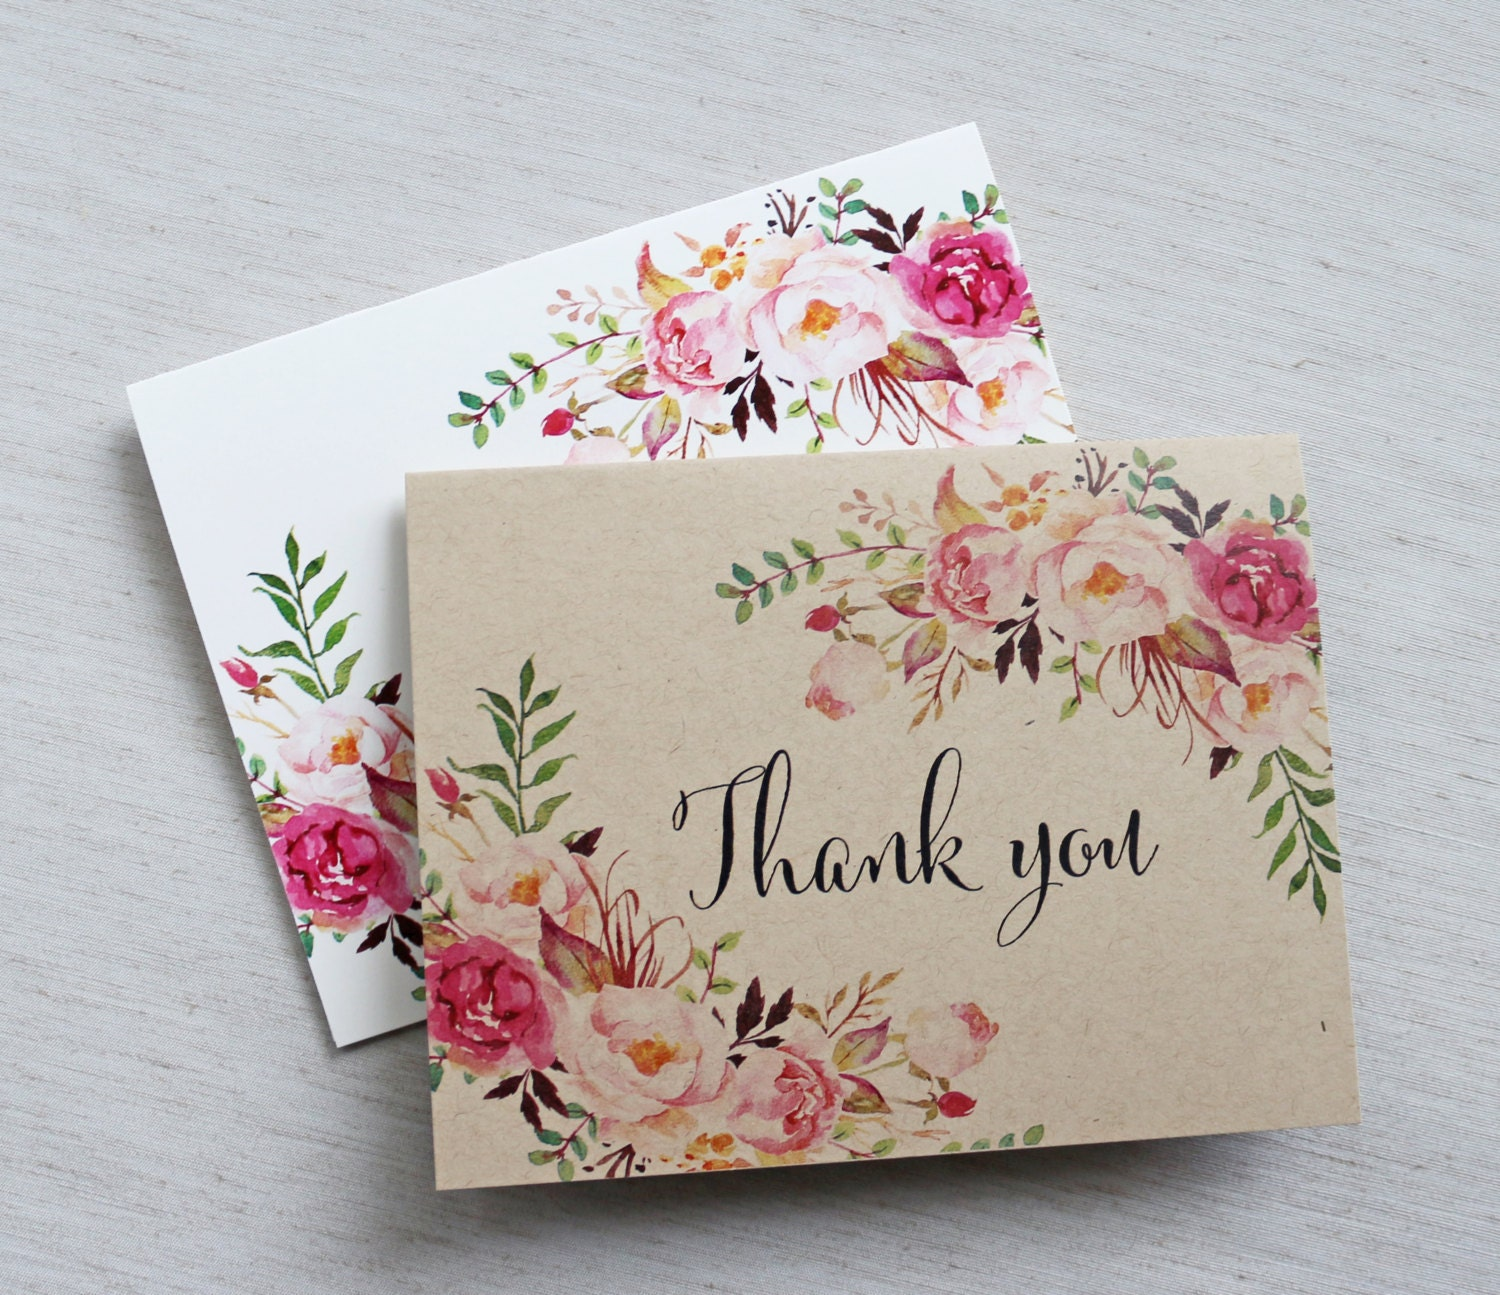 Wedding Notes: Rustic Wedding Thank You Cards. Thank You Cards. Weddings